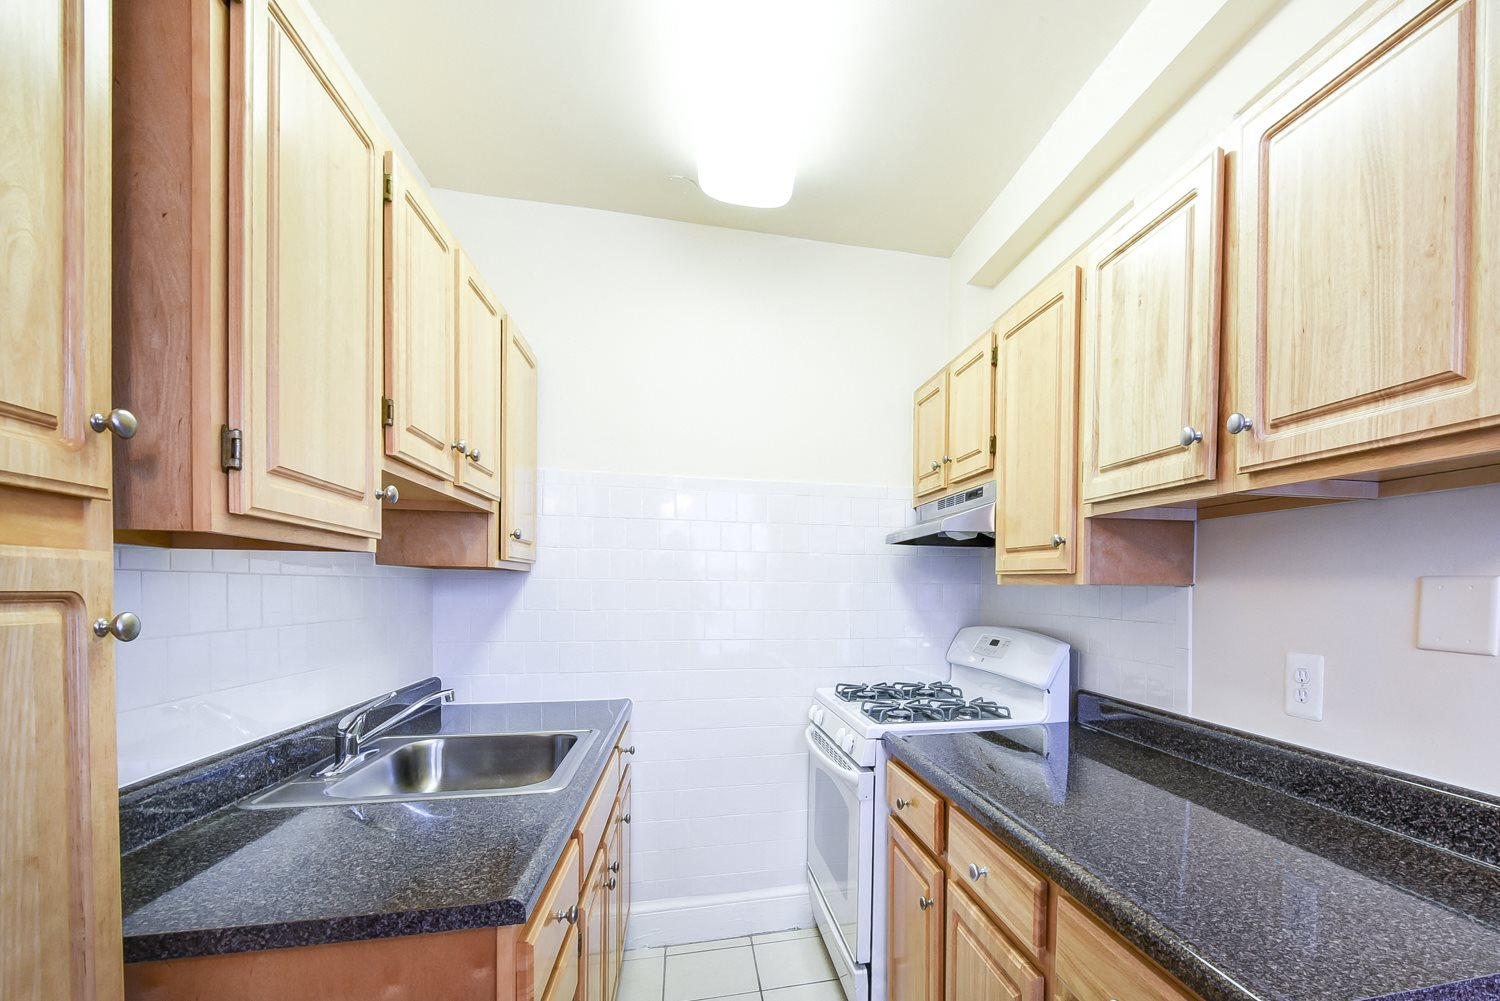 Wakefield-Hall-Kitchen-Cabinets-and-Counter-Tops